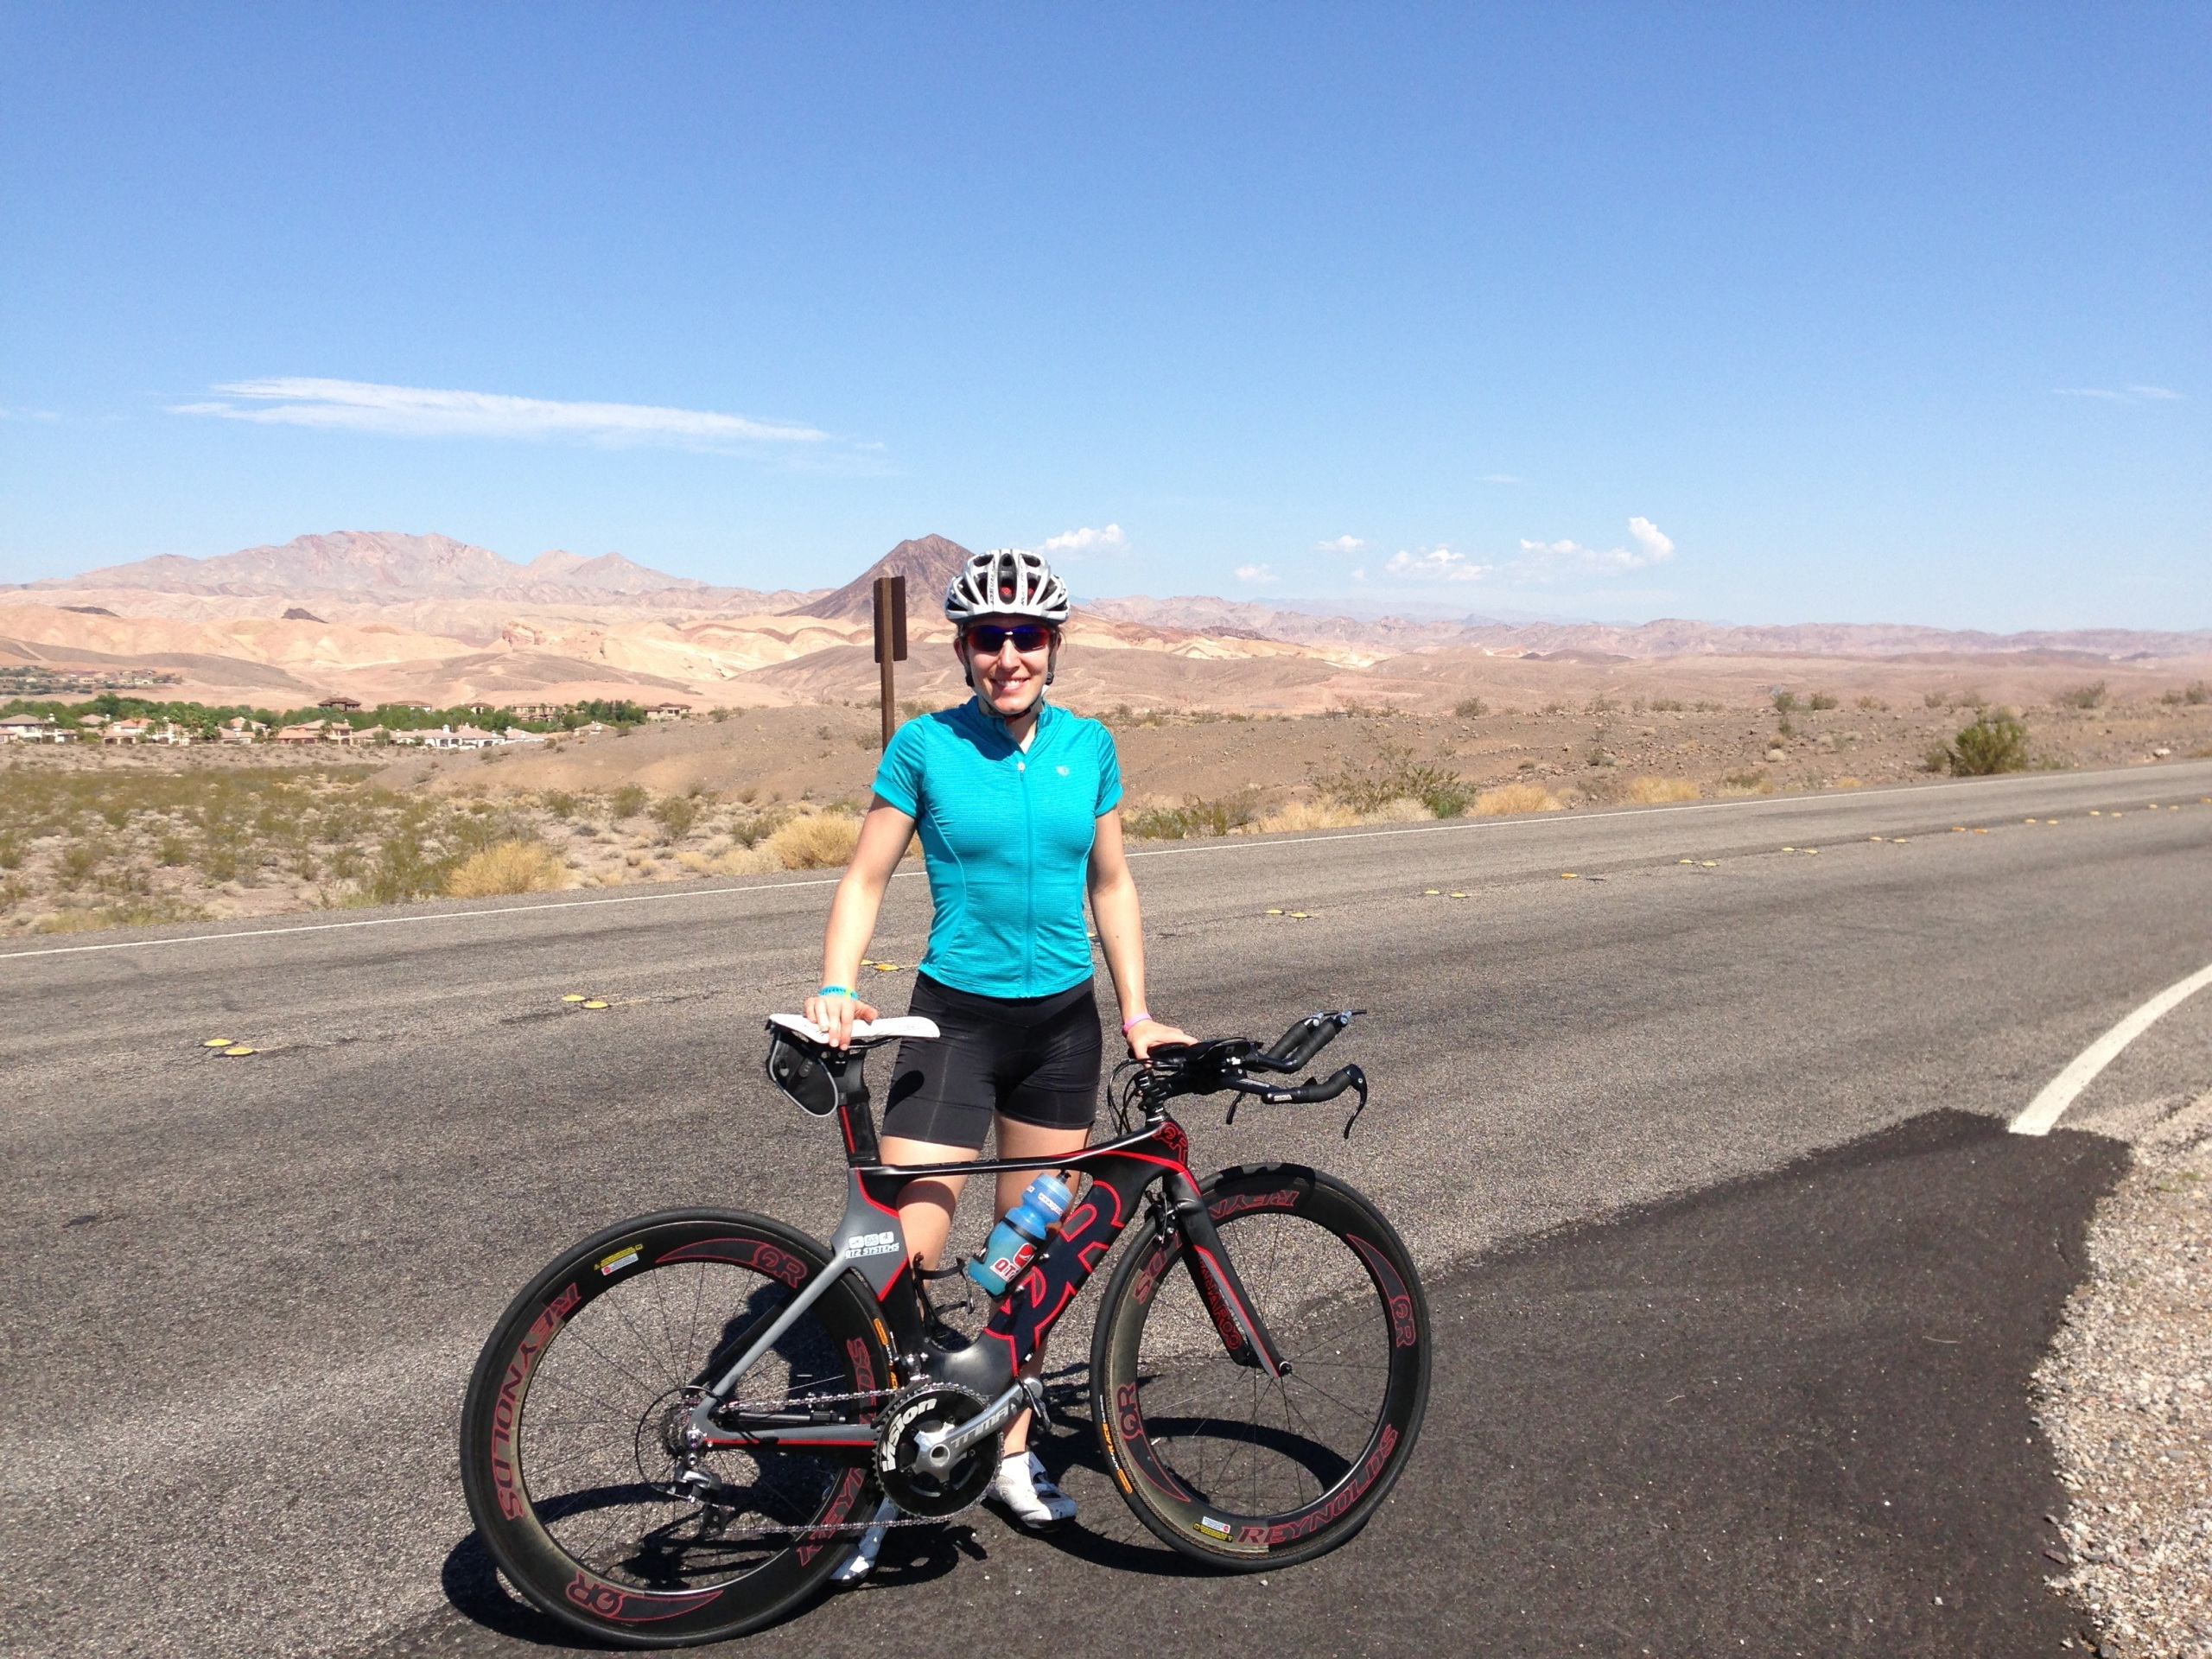 Riding on the bike course before 2013 Ironman 70.3 World Championships